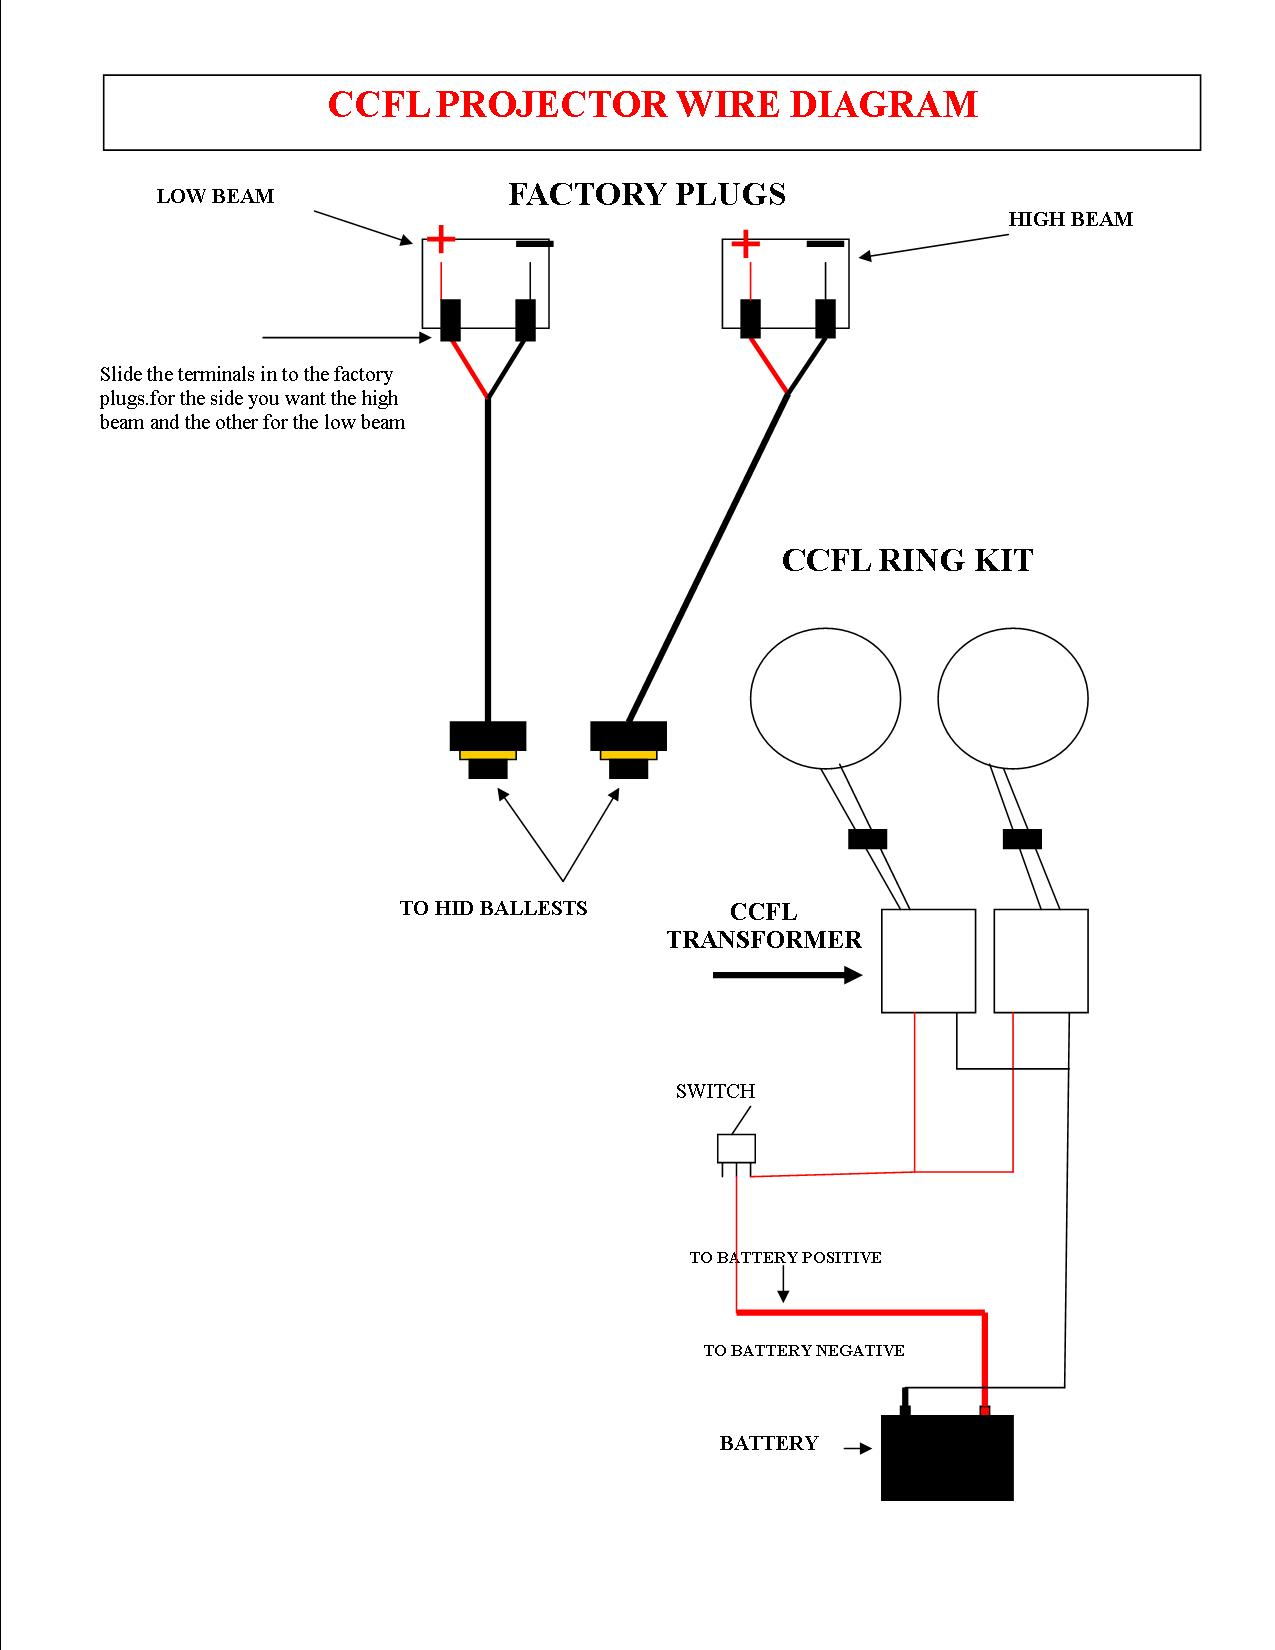 Halo Car Lights Wiring Free Download Diagram Schematic Acura 2004 Tsx Engine Image